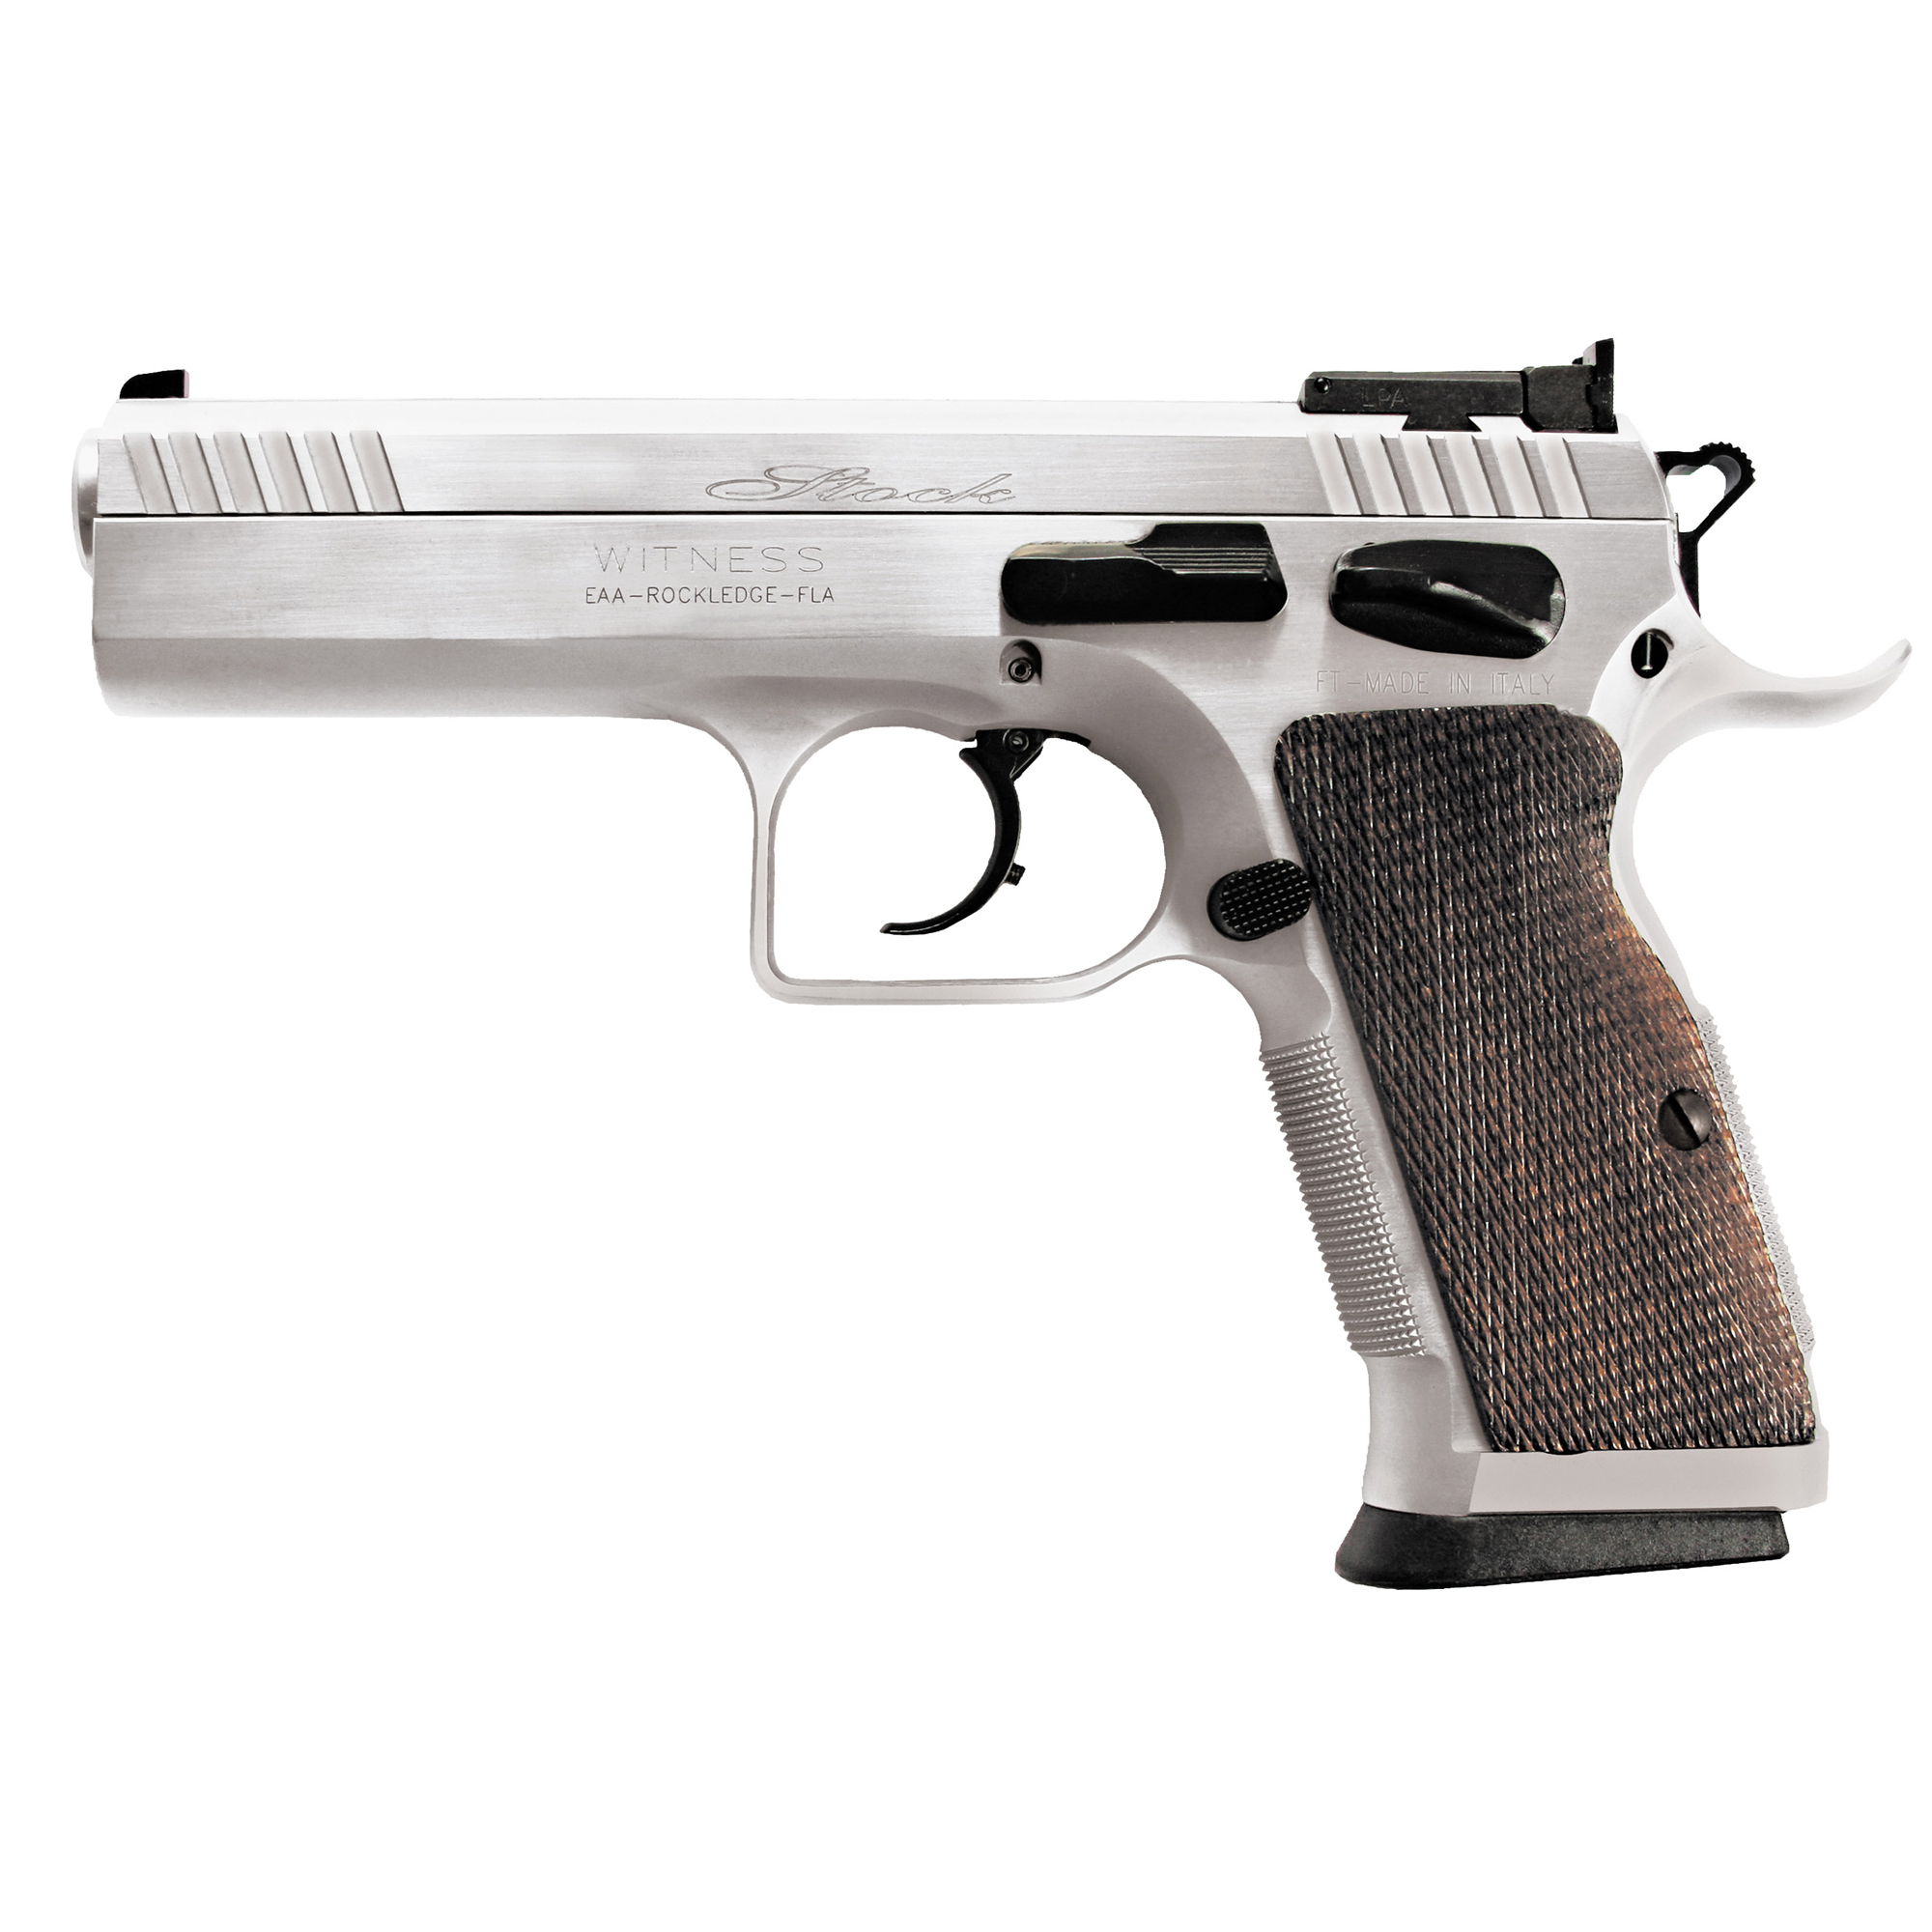 You say you want a pistol to do a little plinking. Try a Witness Match or Witness Stock. Go to the range and discover why it is just plain fun to take a Witness out plinking. It is like taking a fine sports car out for a drive.